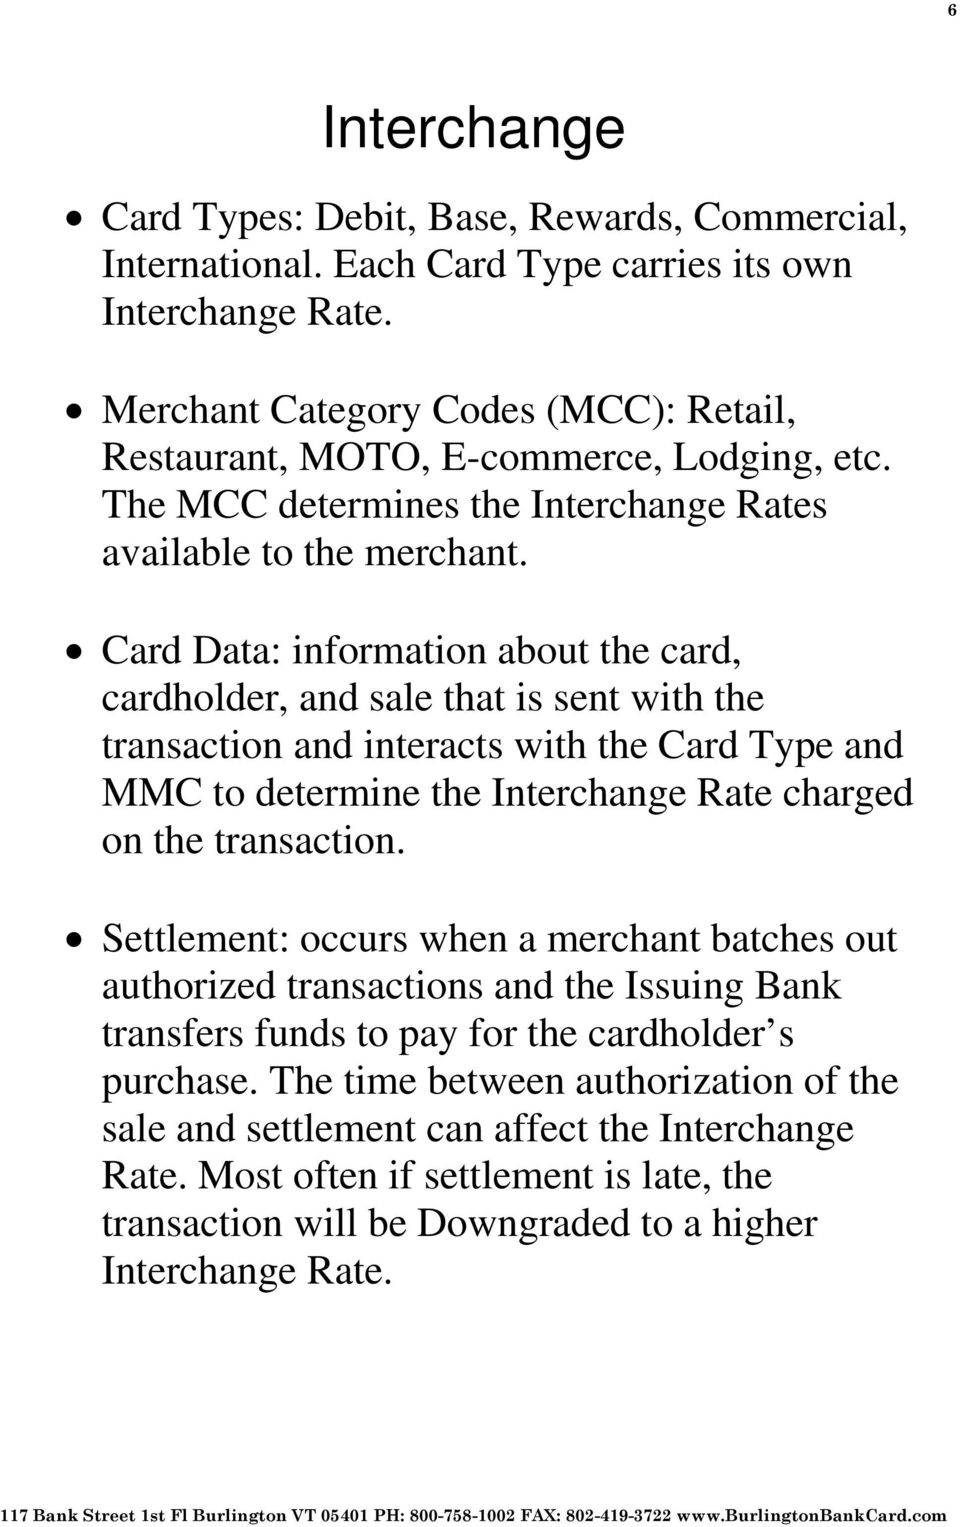 Card Data: information about the card, cardholder, and sale that is sent with the transaction and interacts with the Card Type and MMC to determine the Rate charged on the transaction.